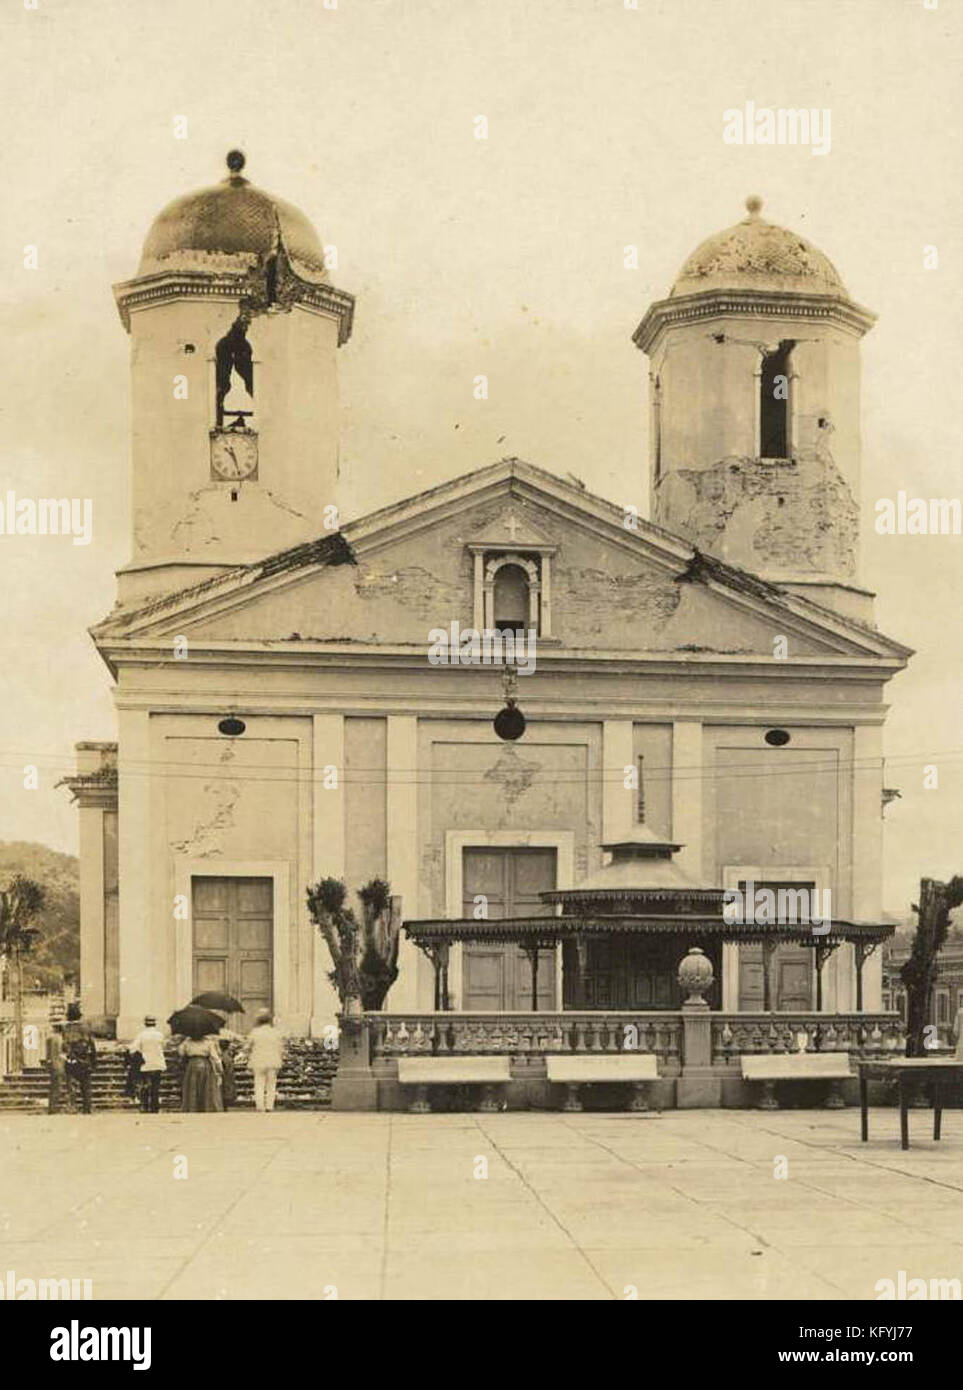 Post Card of the damaged caused by the 1918 earthquake to the Nuestra Señora de la Candelaria church in Mayagüez, - Stock Image